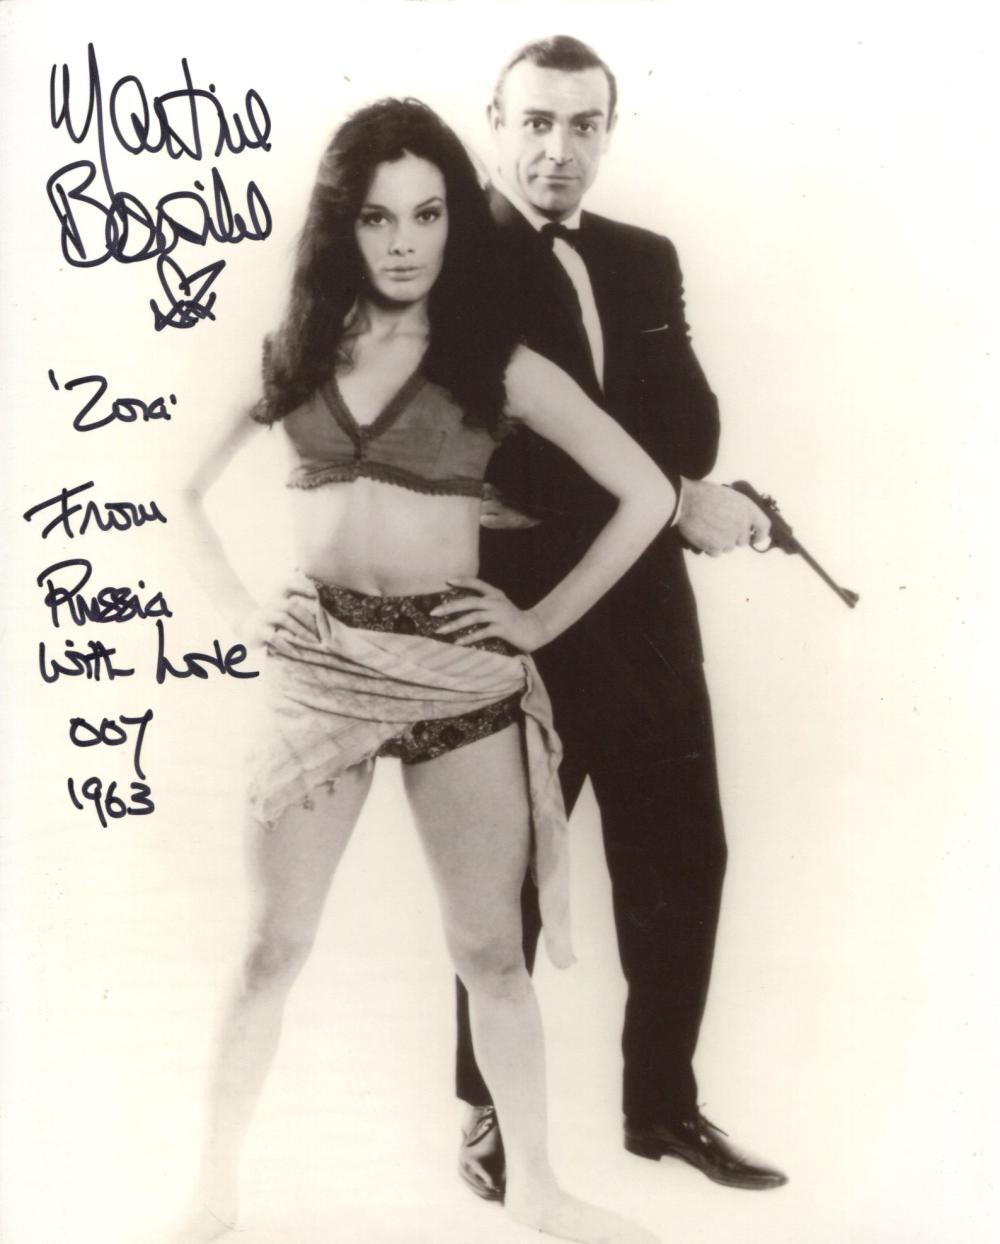 007 Bond girl Martine Beswick signed 8x10 From Russia With Love movie photo with character name and